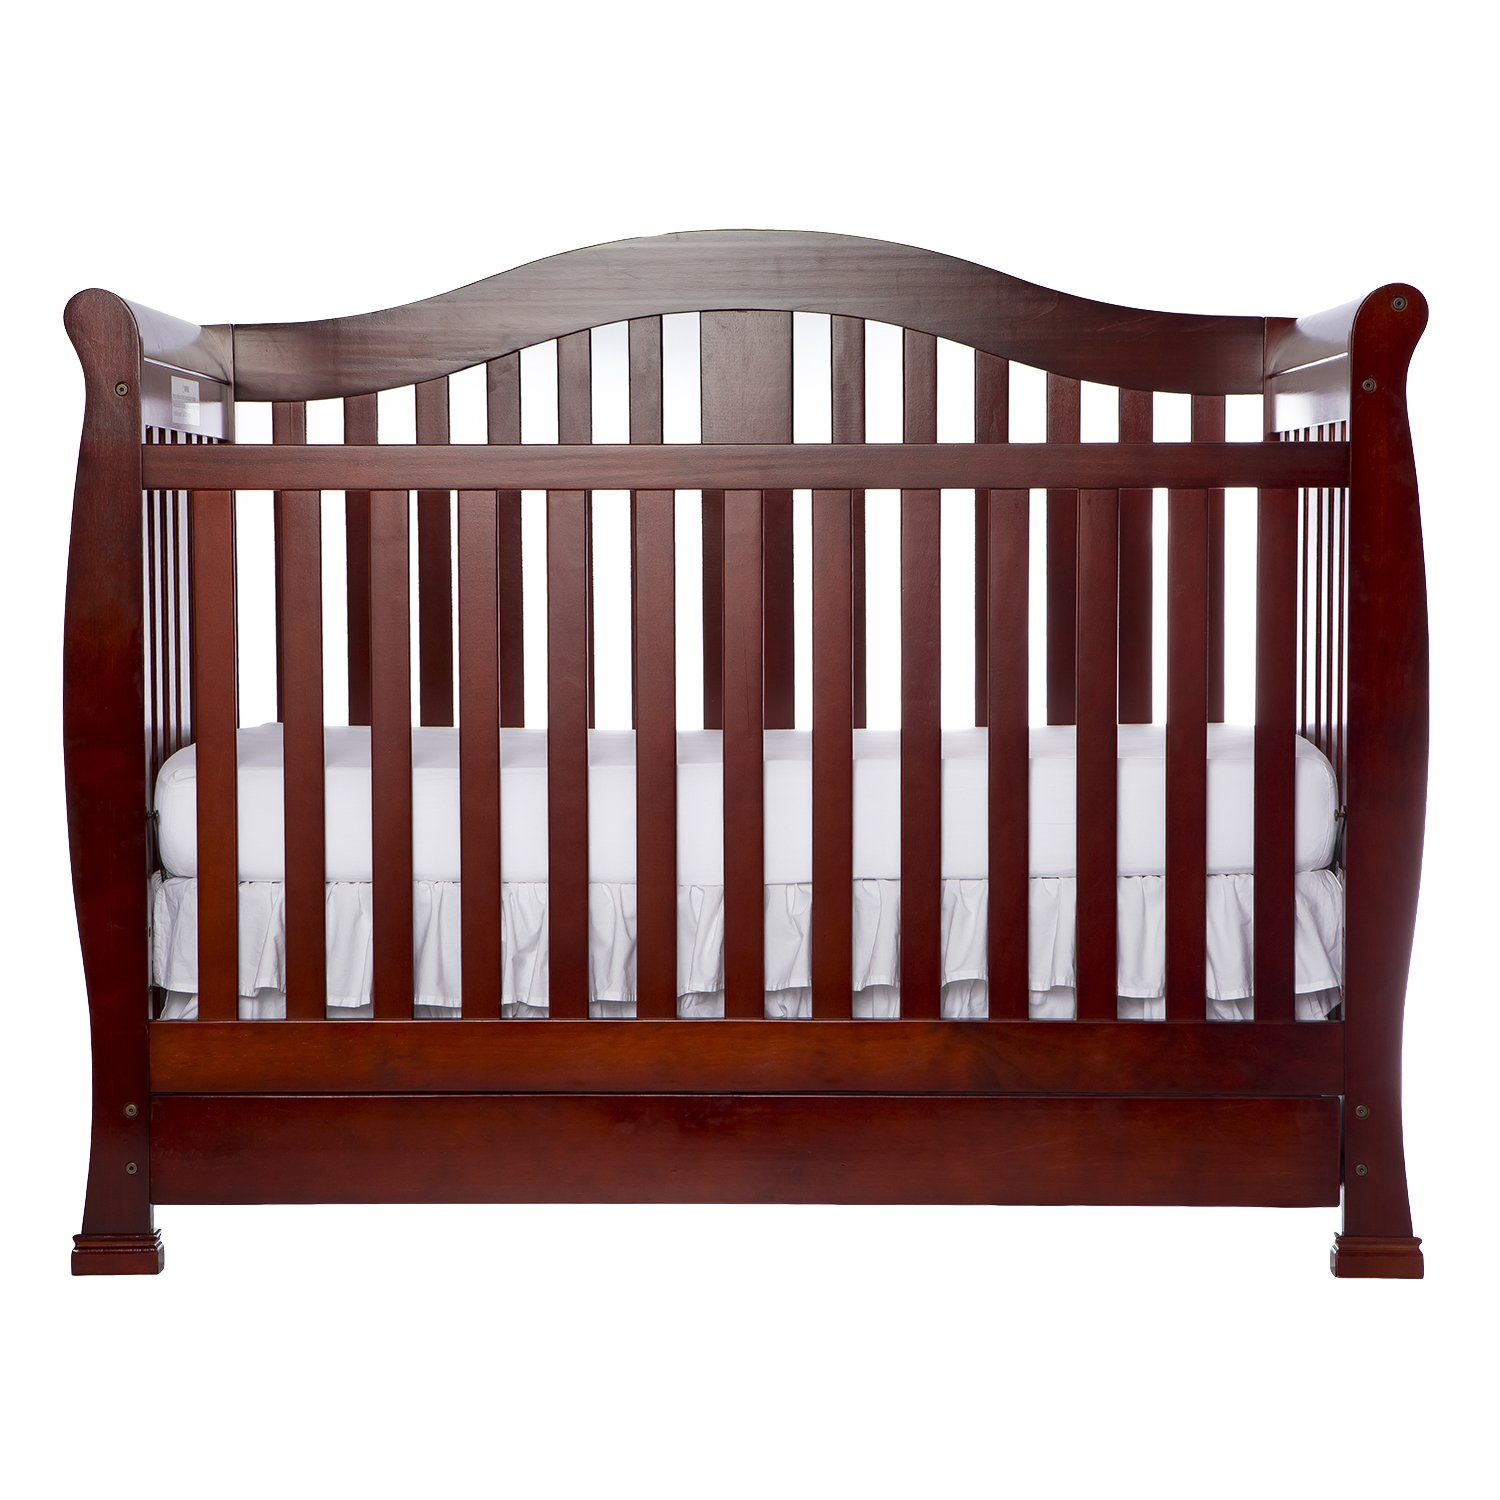 Amazon.com : Dream On Me Addison Crib, Cherry : Convertible Cribs : Baby